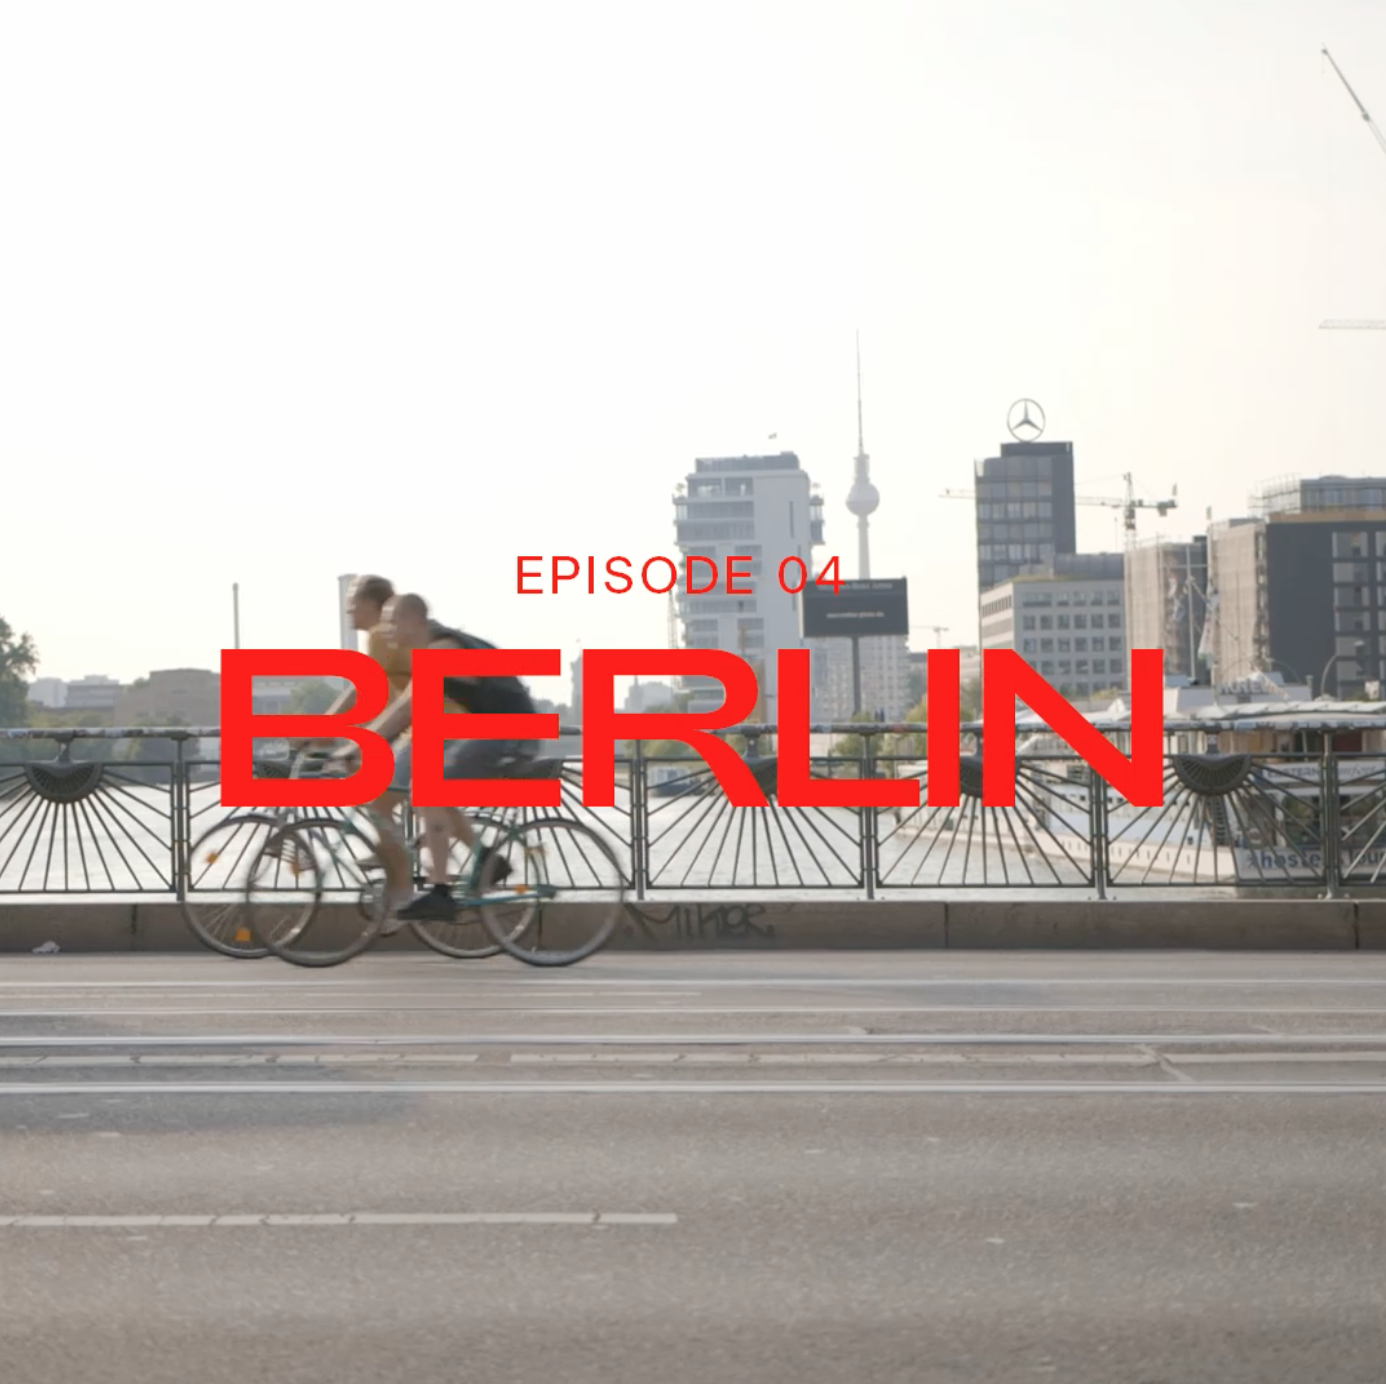 Young Bloods Episode 04: Berlin - These up-and-coming innovators are feeding off Berlin's creative energy and making it their own. Stay tuned for the release on May 27.